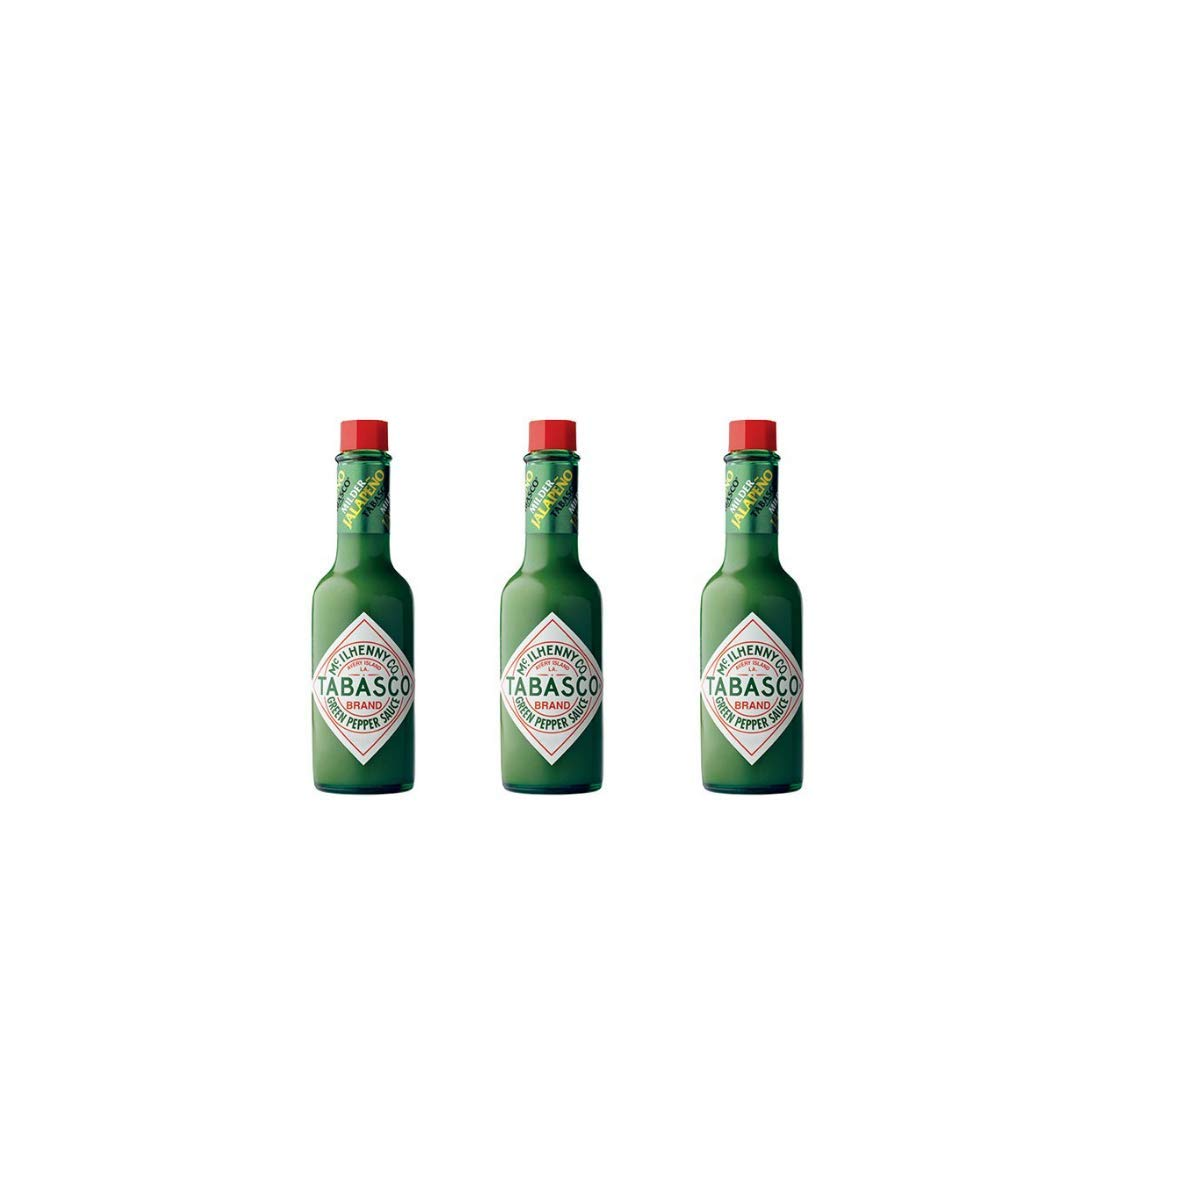 Tabasco Green Pepper Sauce, 5-ounce Bottle (Pack of 3)